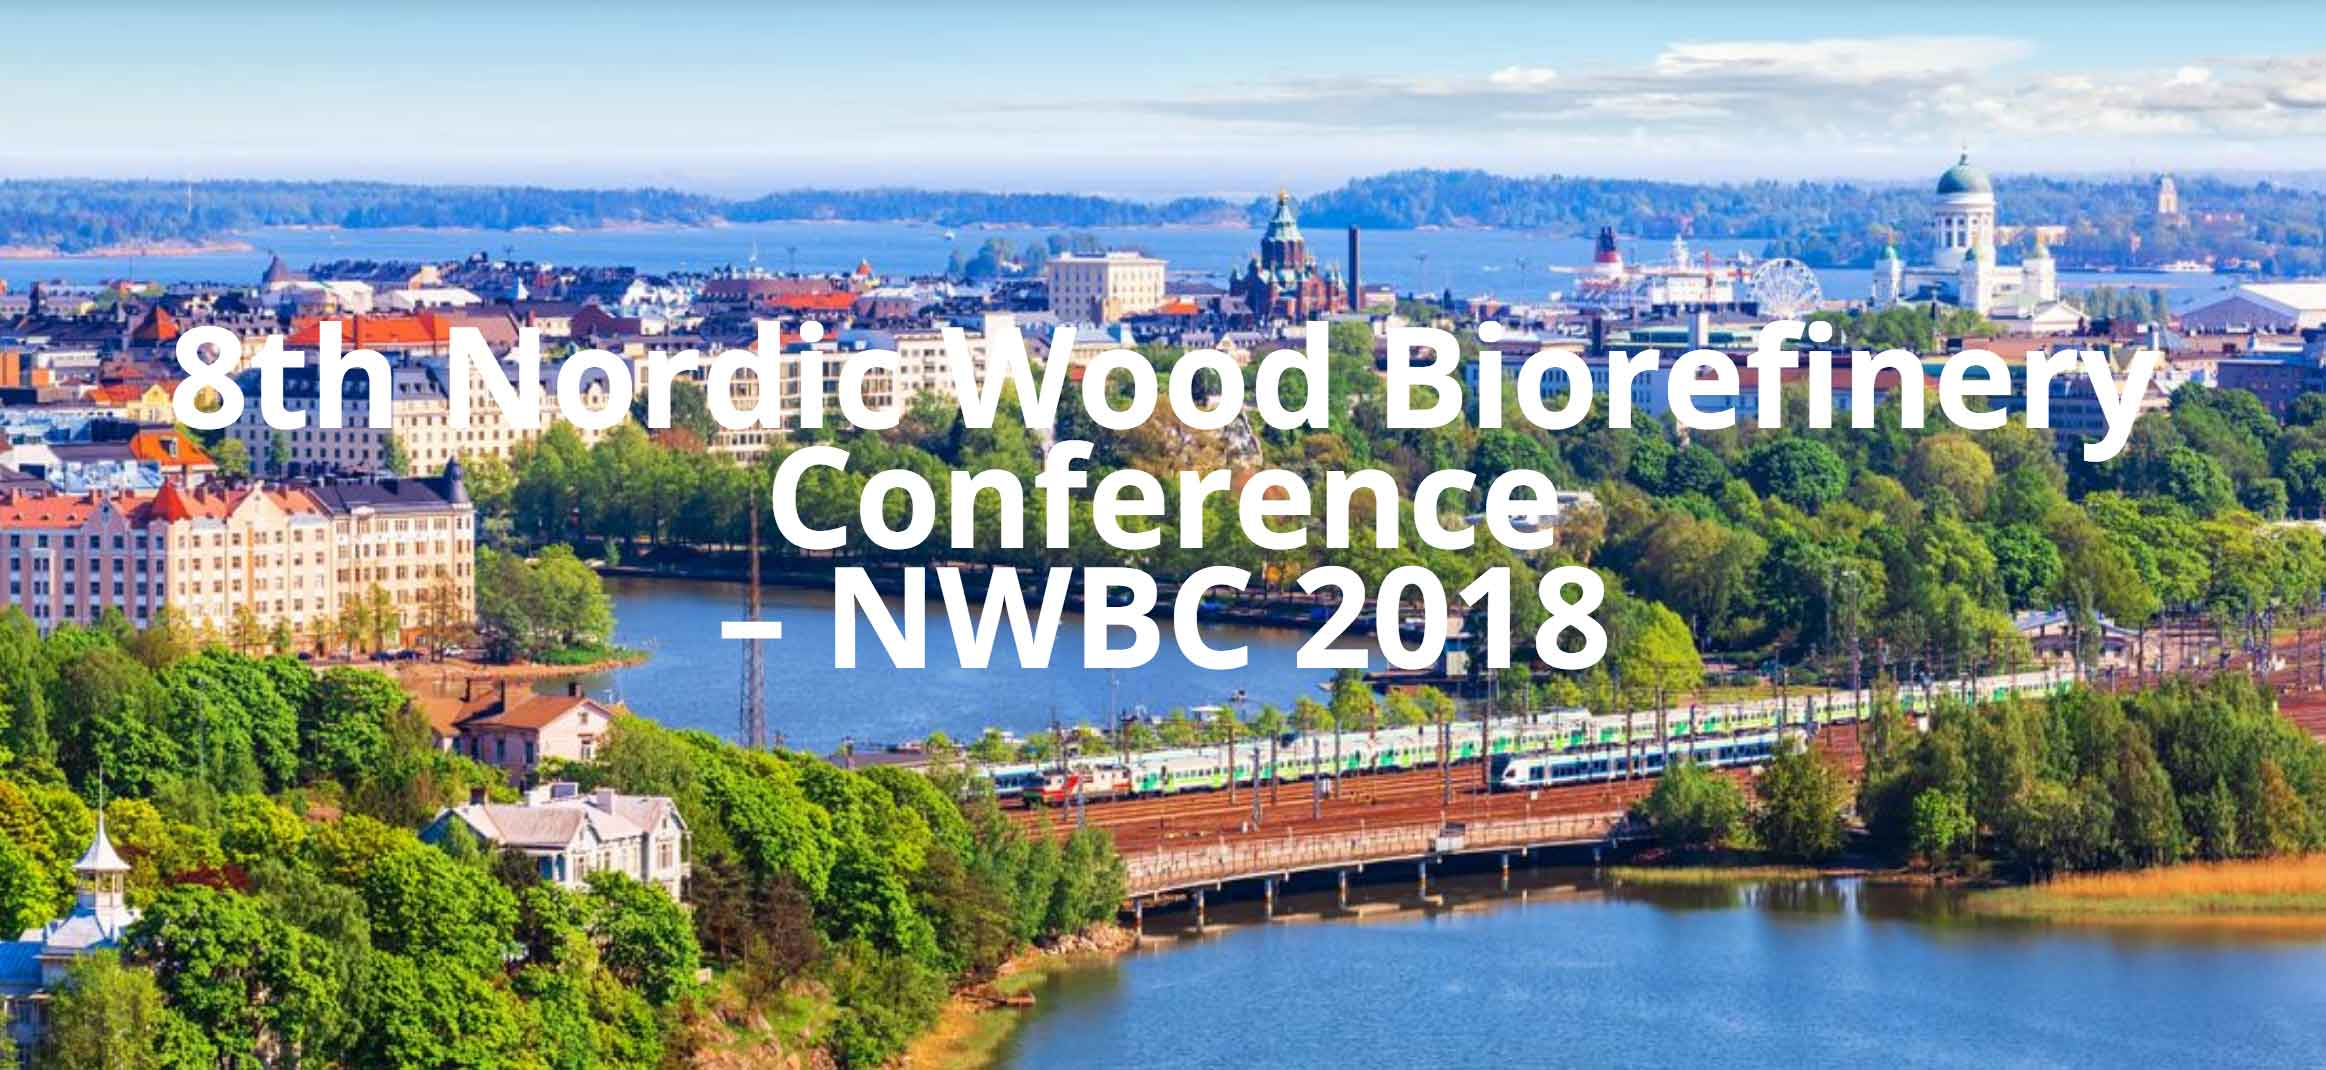 Arbiom at the Nordic Wood Biorefinery Conference